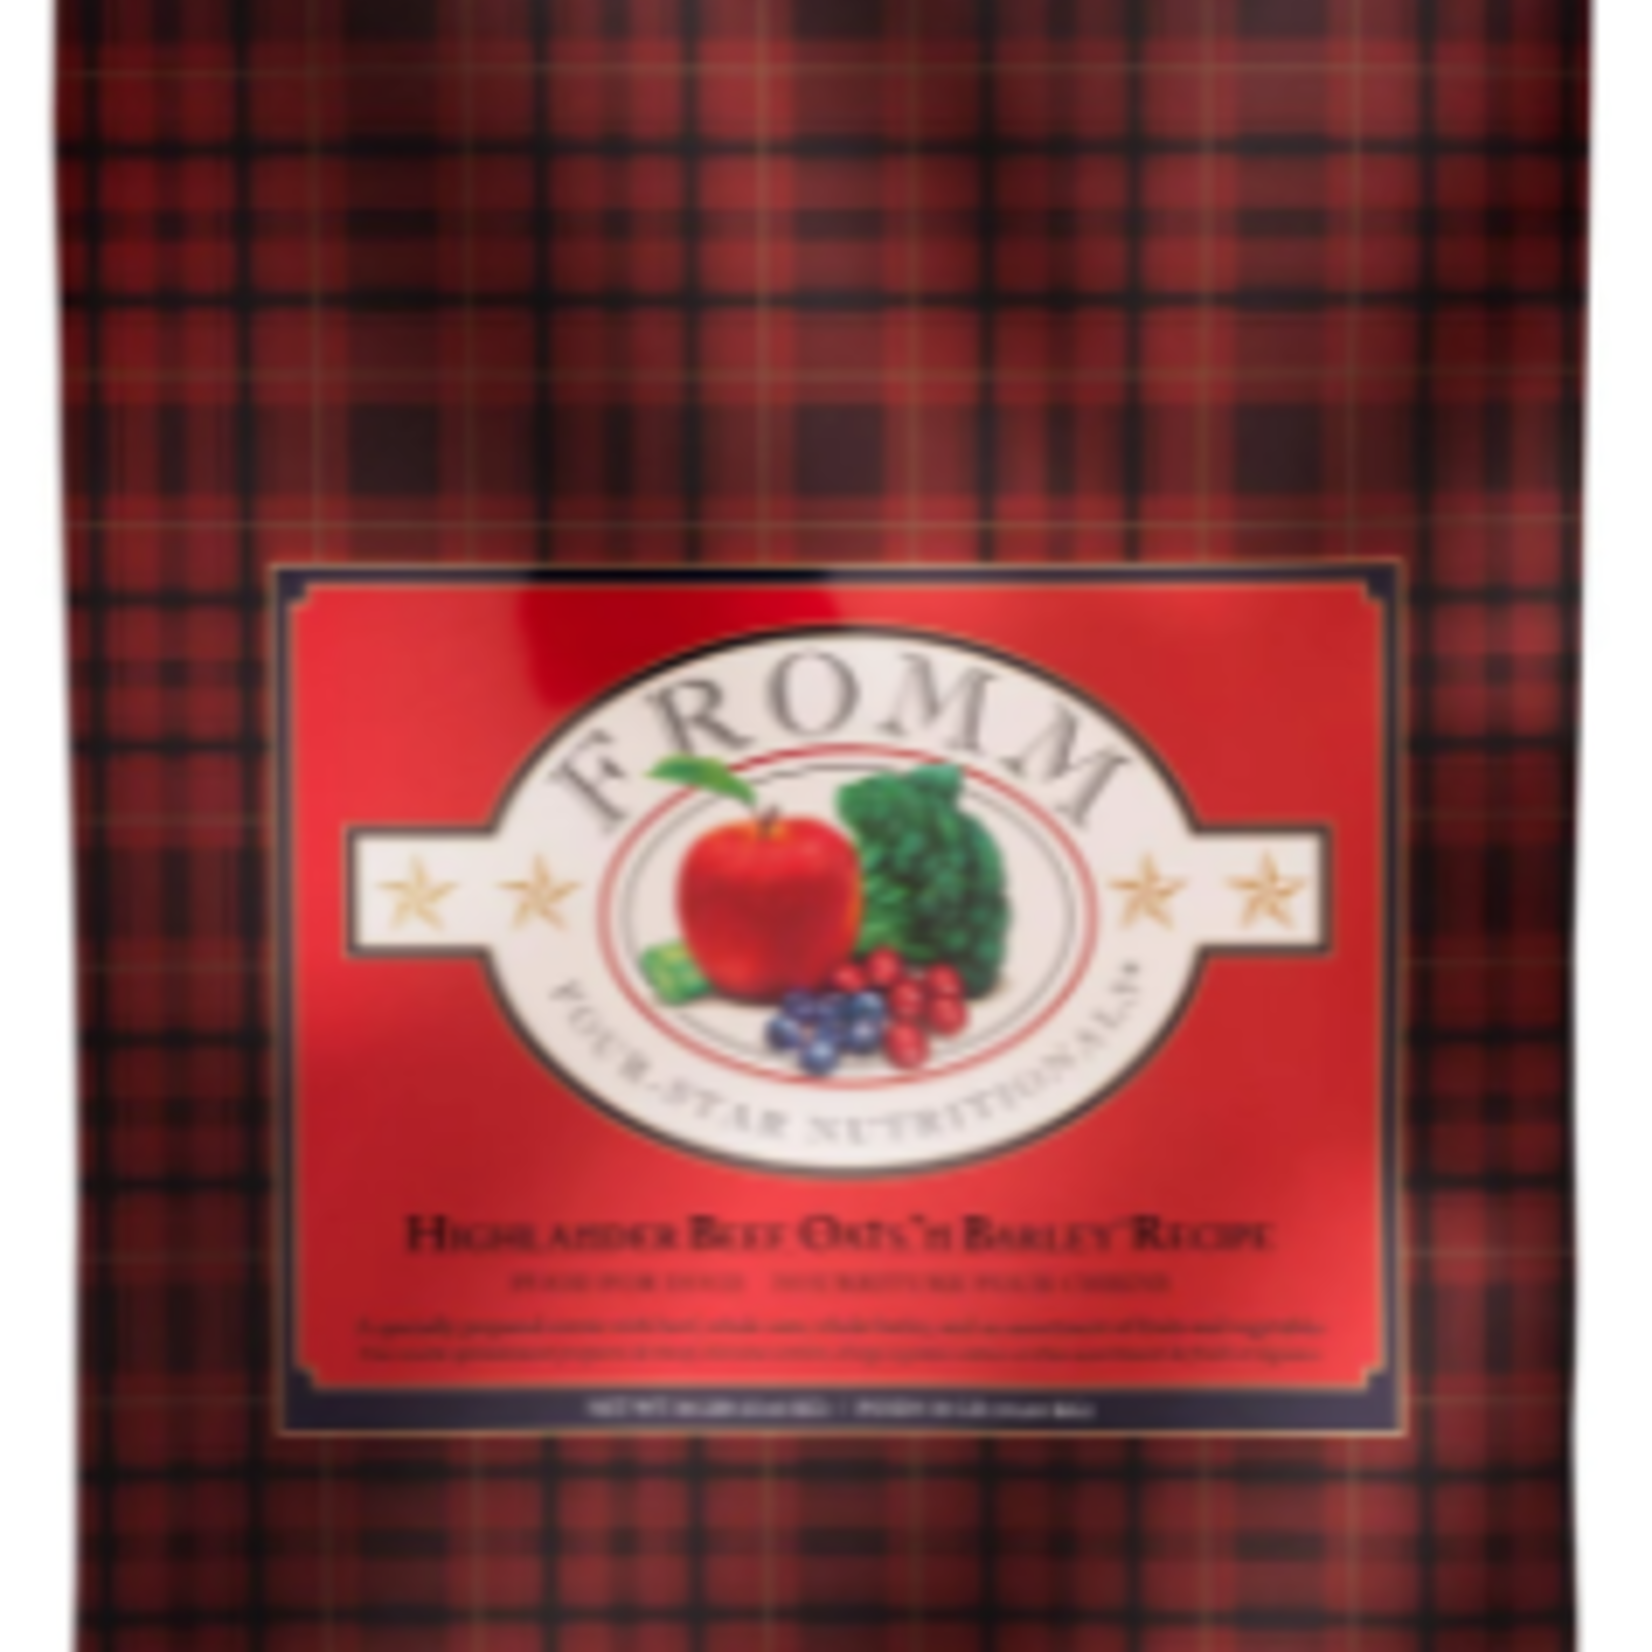 Fromm Highlander Beef - Croquettes pour chien